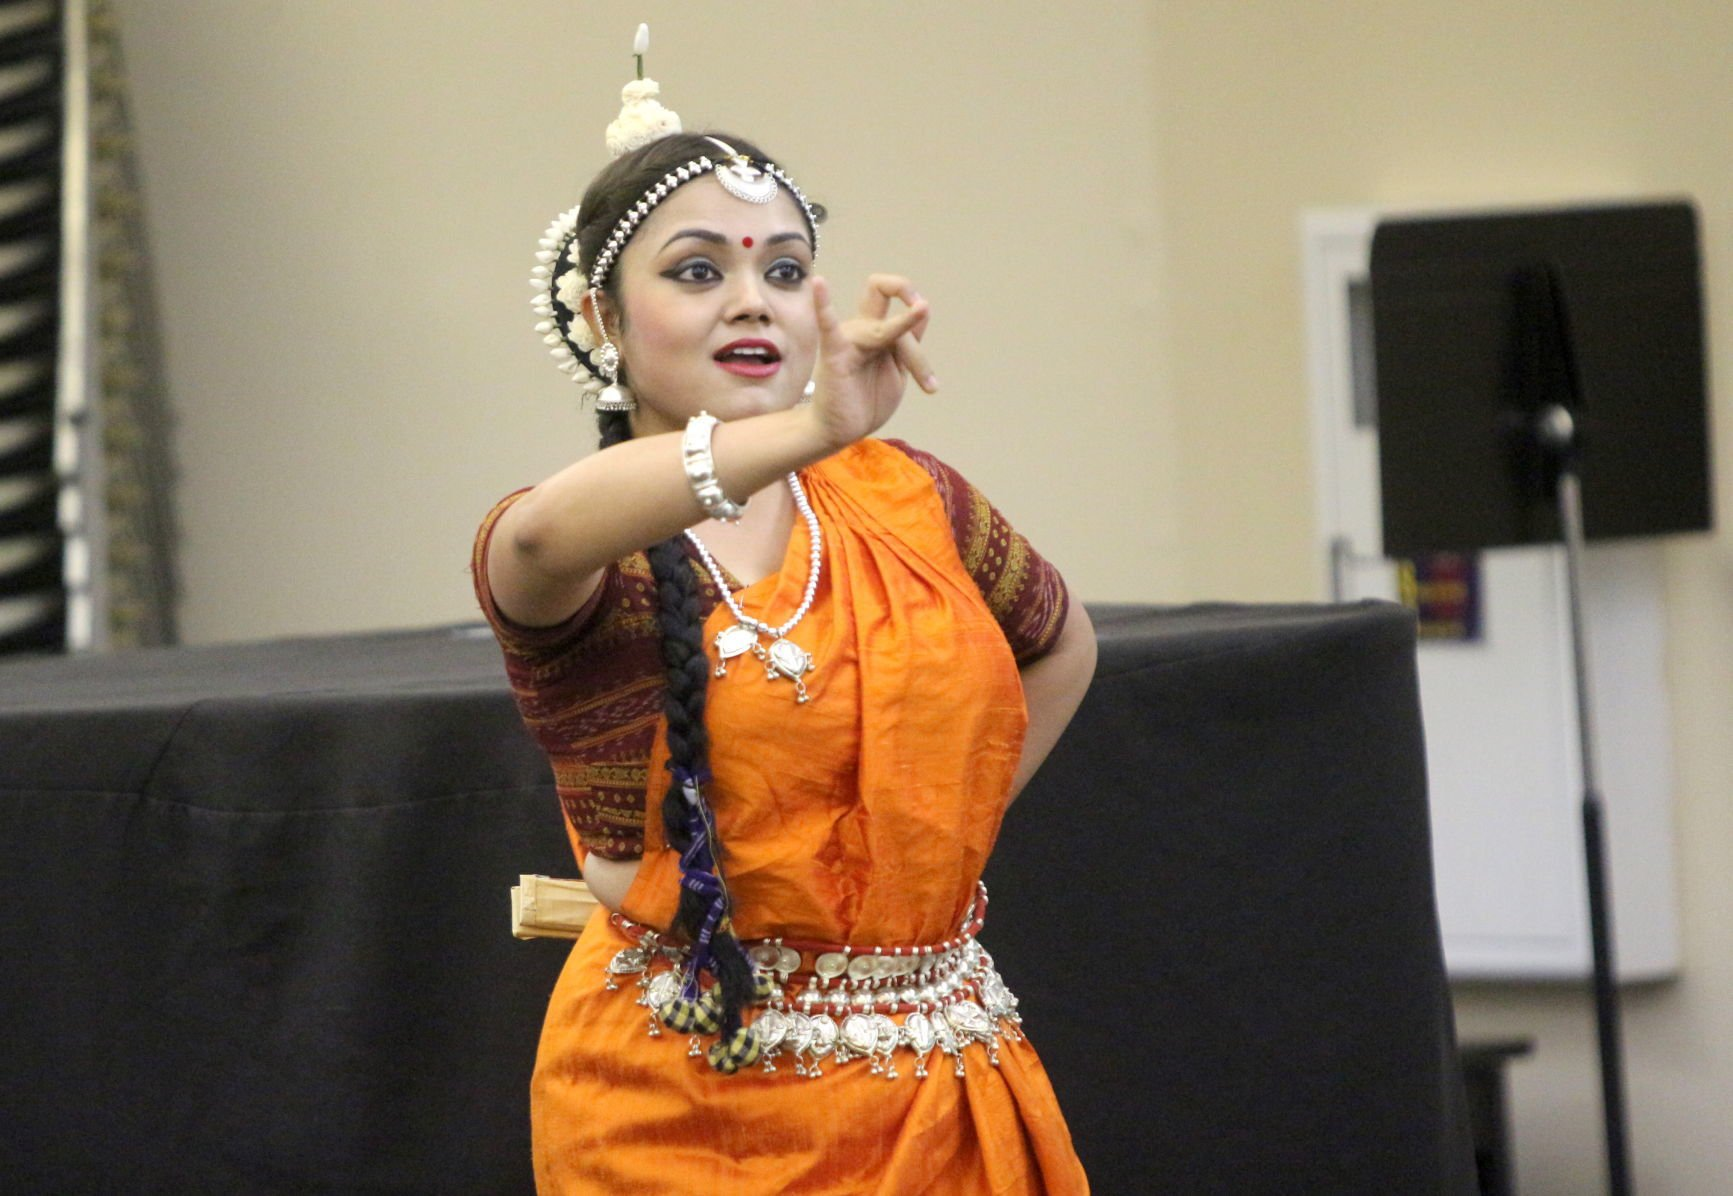 UUFN festival brings international flair to Newark | Newark Post